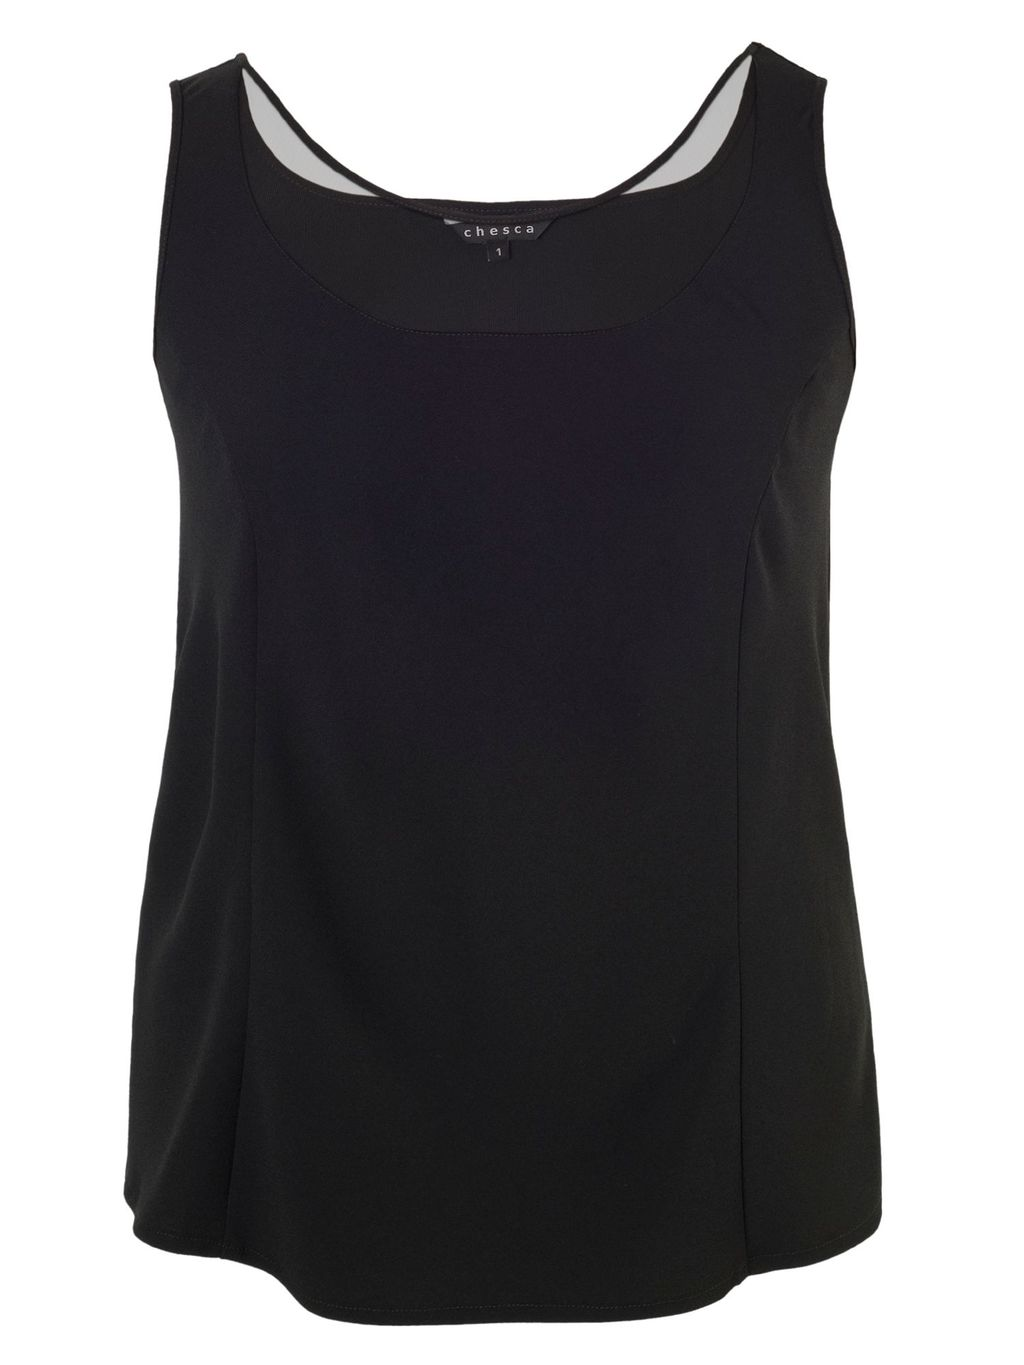 Crepe Camisole With Mesh Trim, Black - neckline: round neck; pattern: plain; sleeve style: sleeveless; predominant colour: black; occasions: casual, creative work; length: standard; style: top; fibres: polyester/polyamide - 100%; fit: body skimming; sleeve length: sleeveless; texture group: crepes; pattern type: fabric; season: s/s 2015